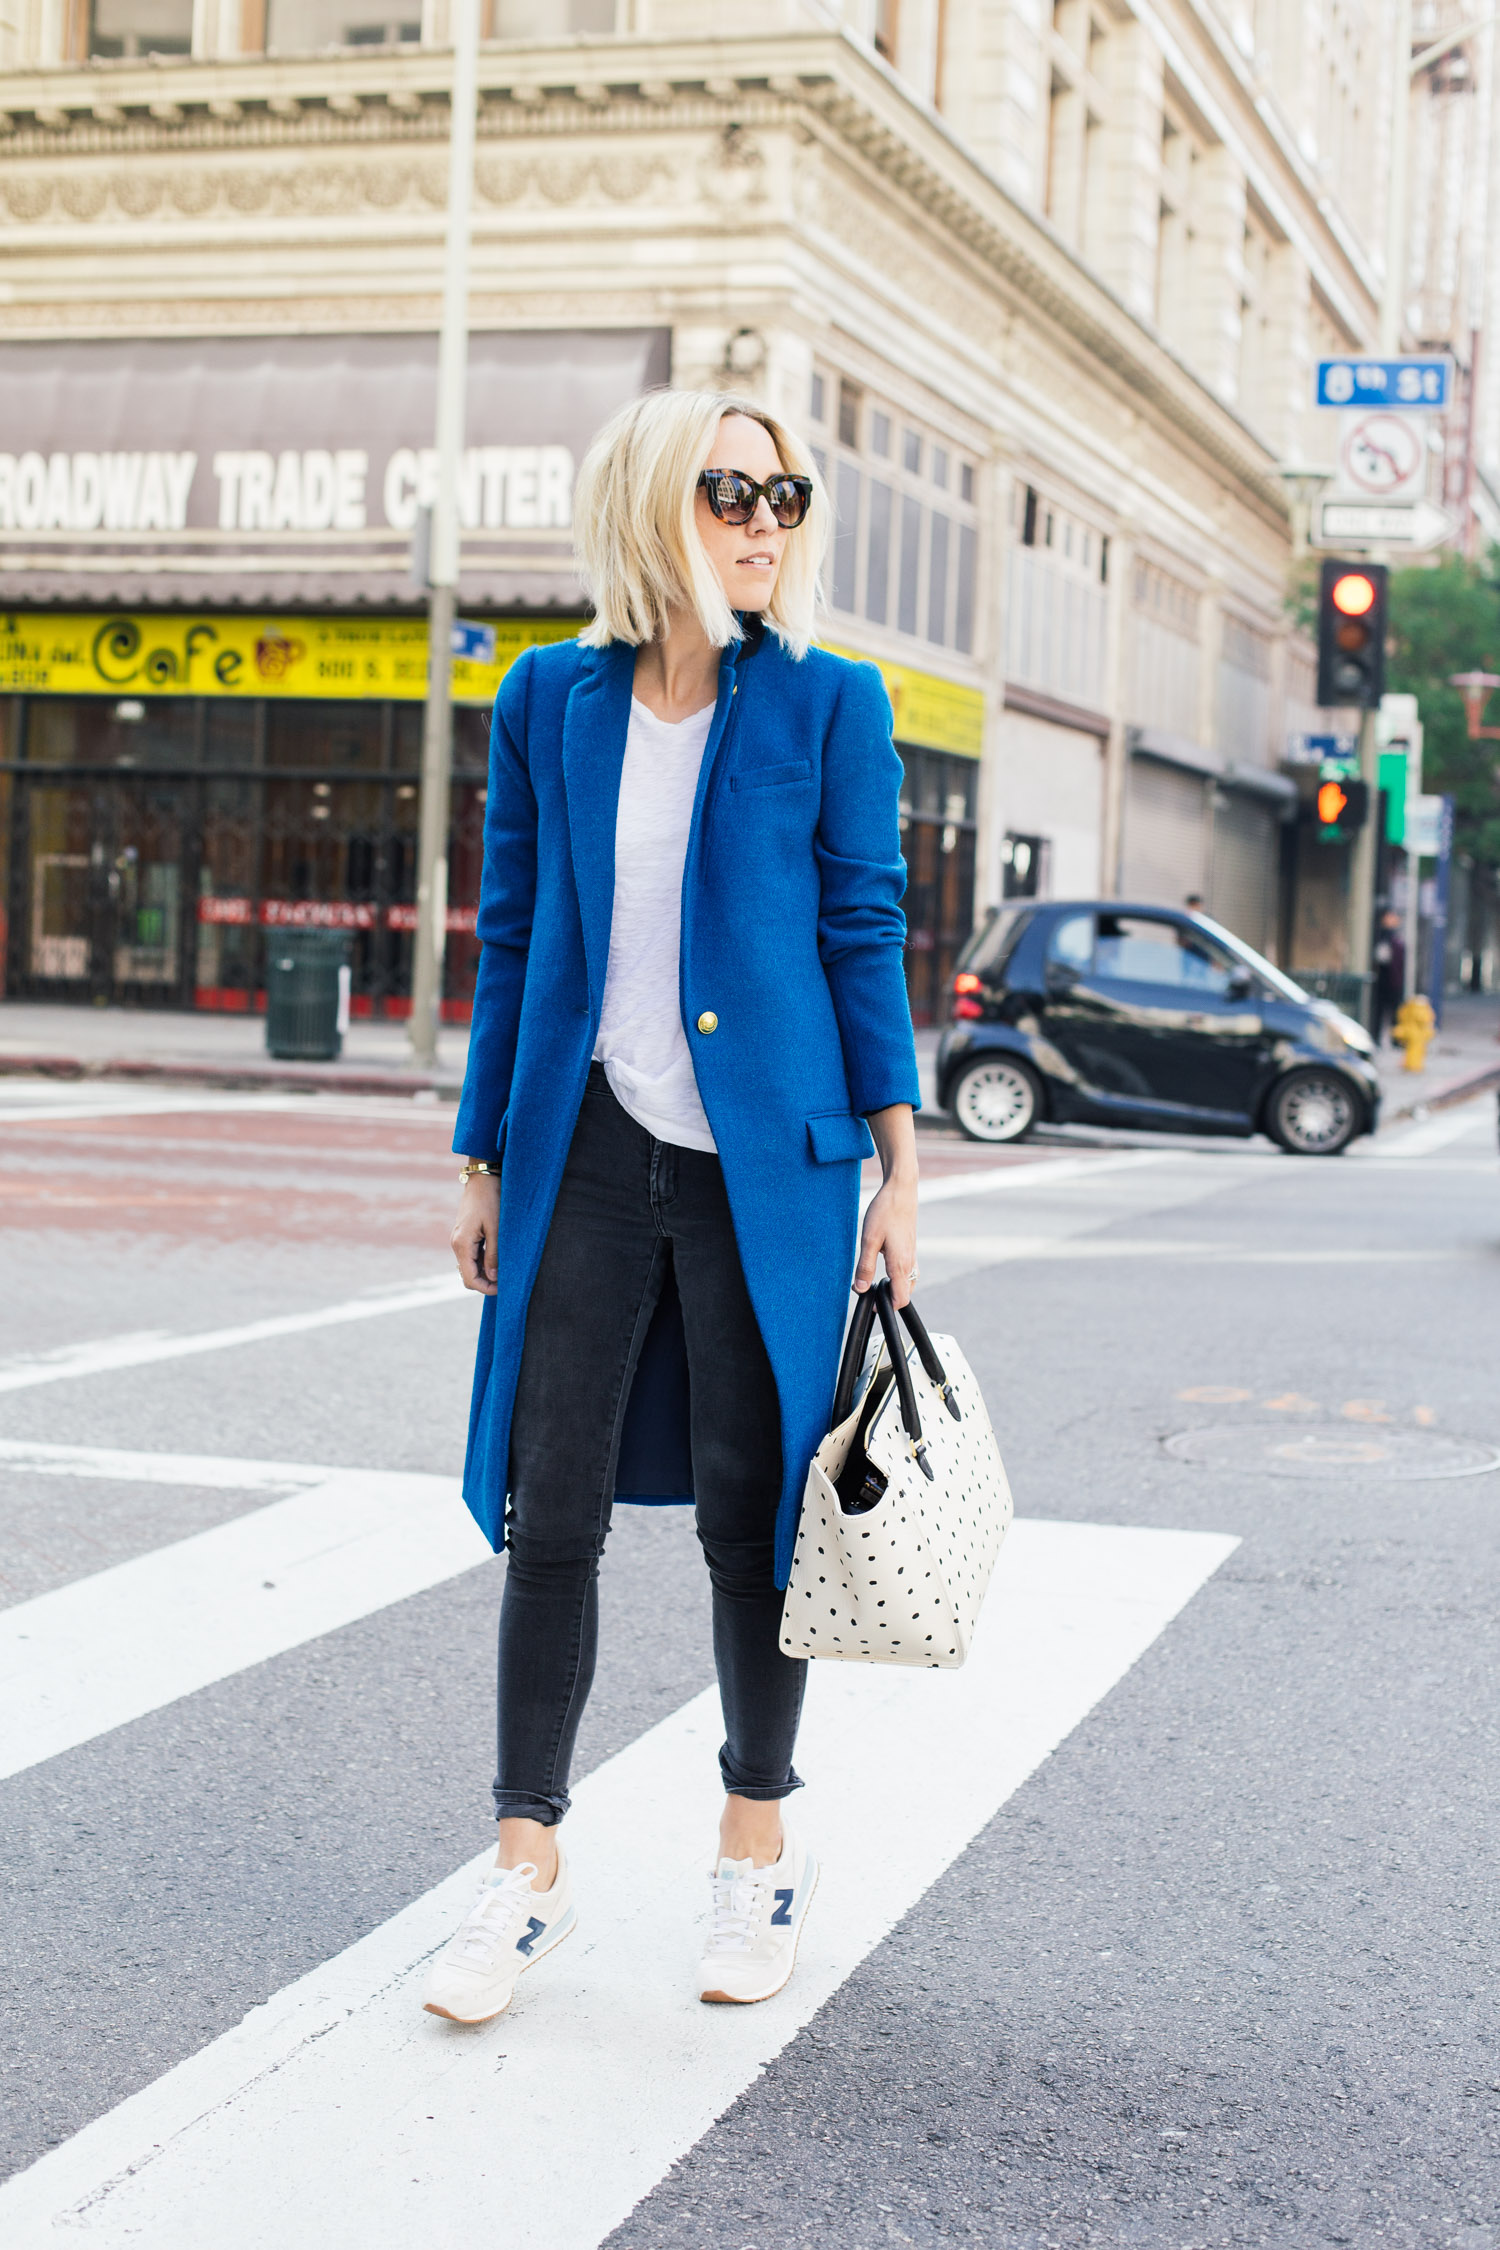 Jacey Duprie is wearing a blue coat from J. Crew and the black jeans are from James Jeans